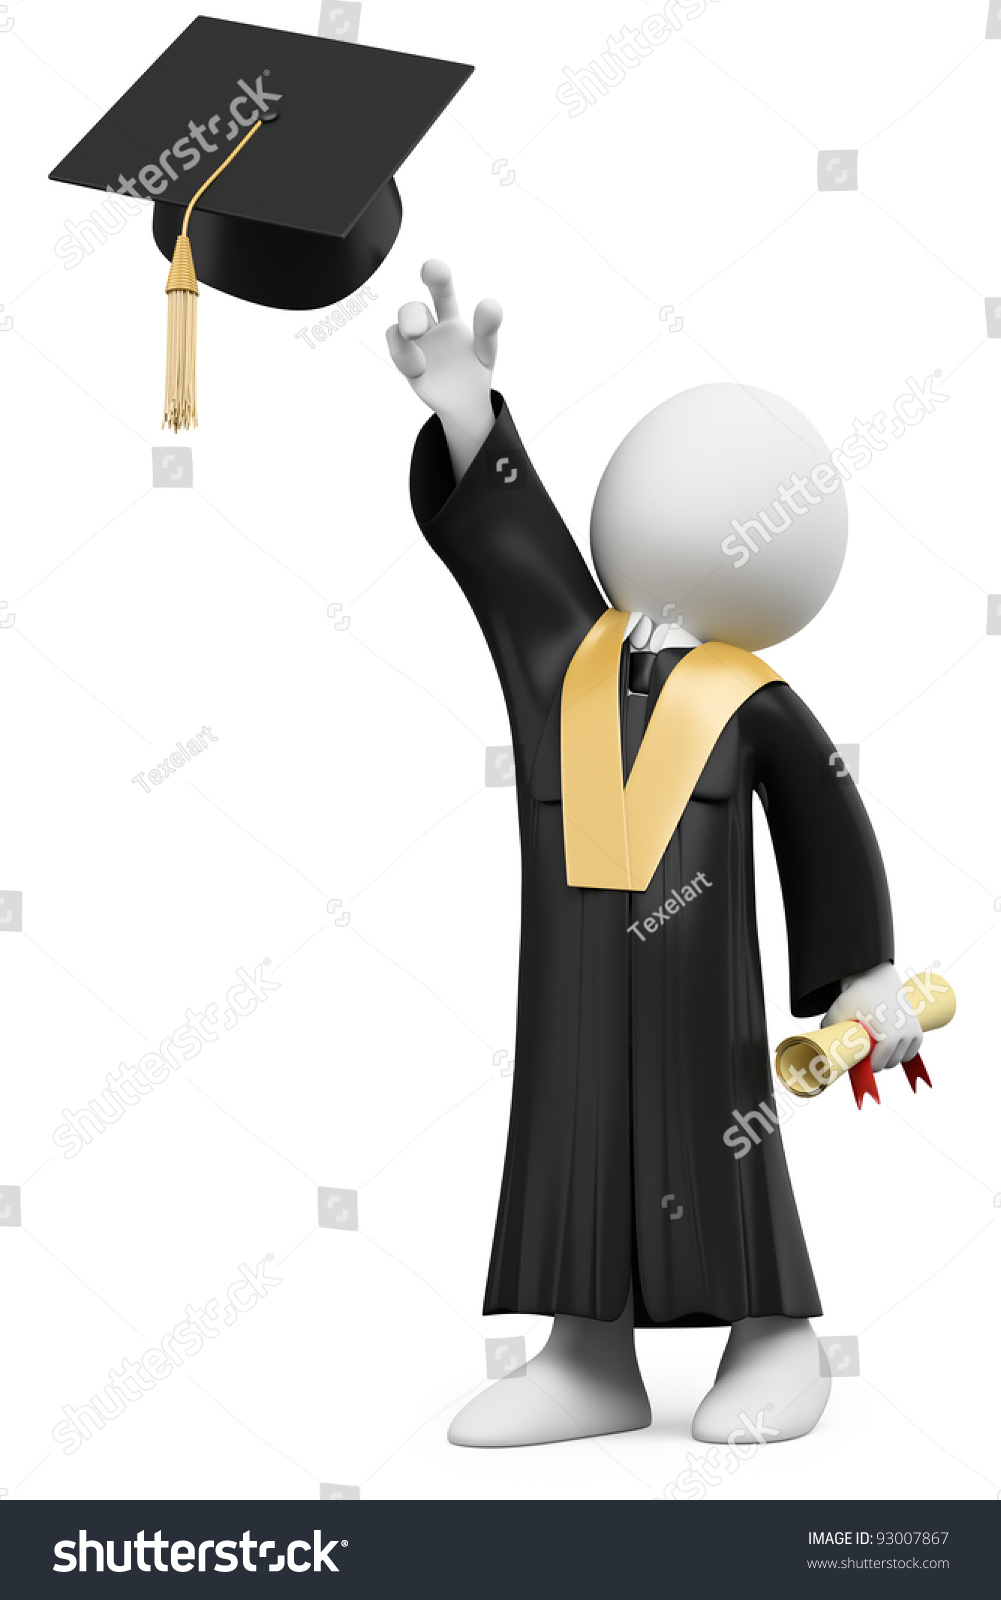 Royalty Free Stock Illustration of 3 D Student Dressed Cap Gown On ...